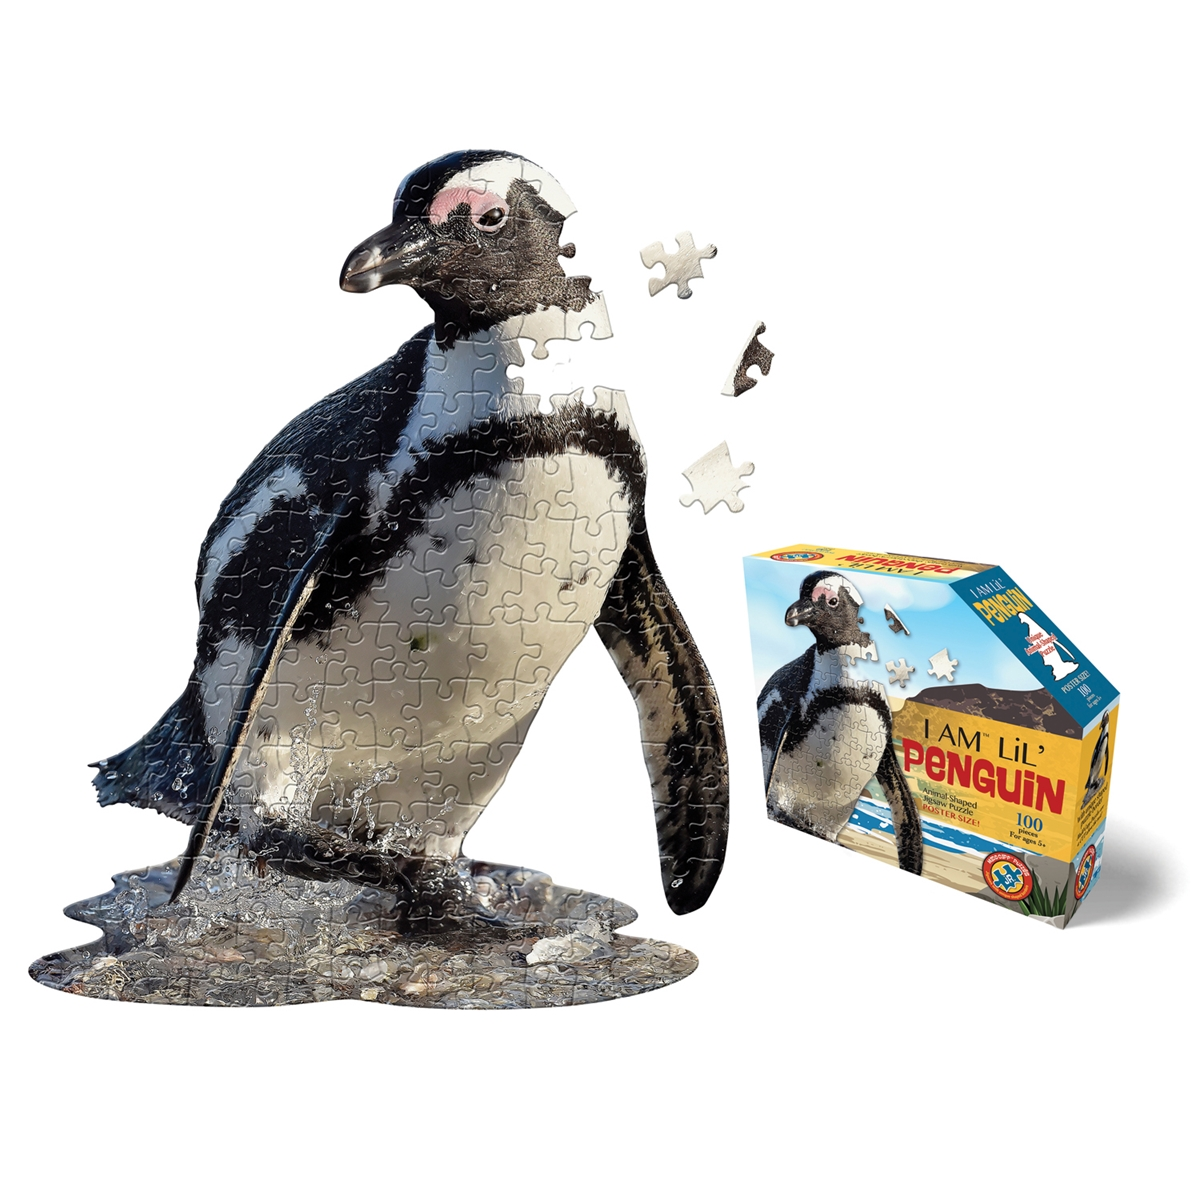 I am Lil' Penguin Puzzle